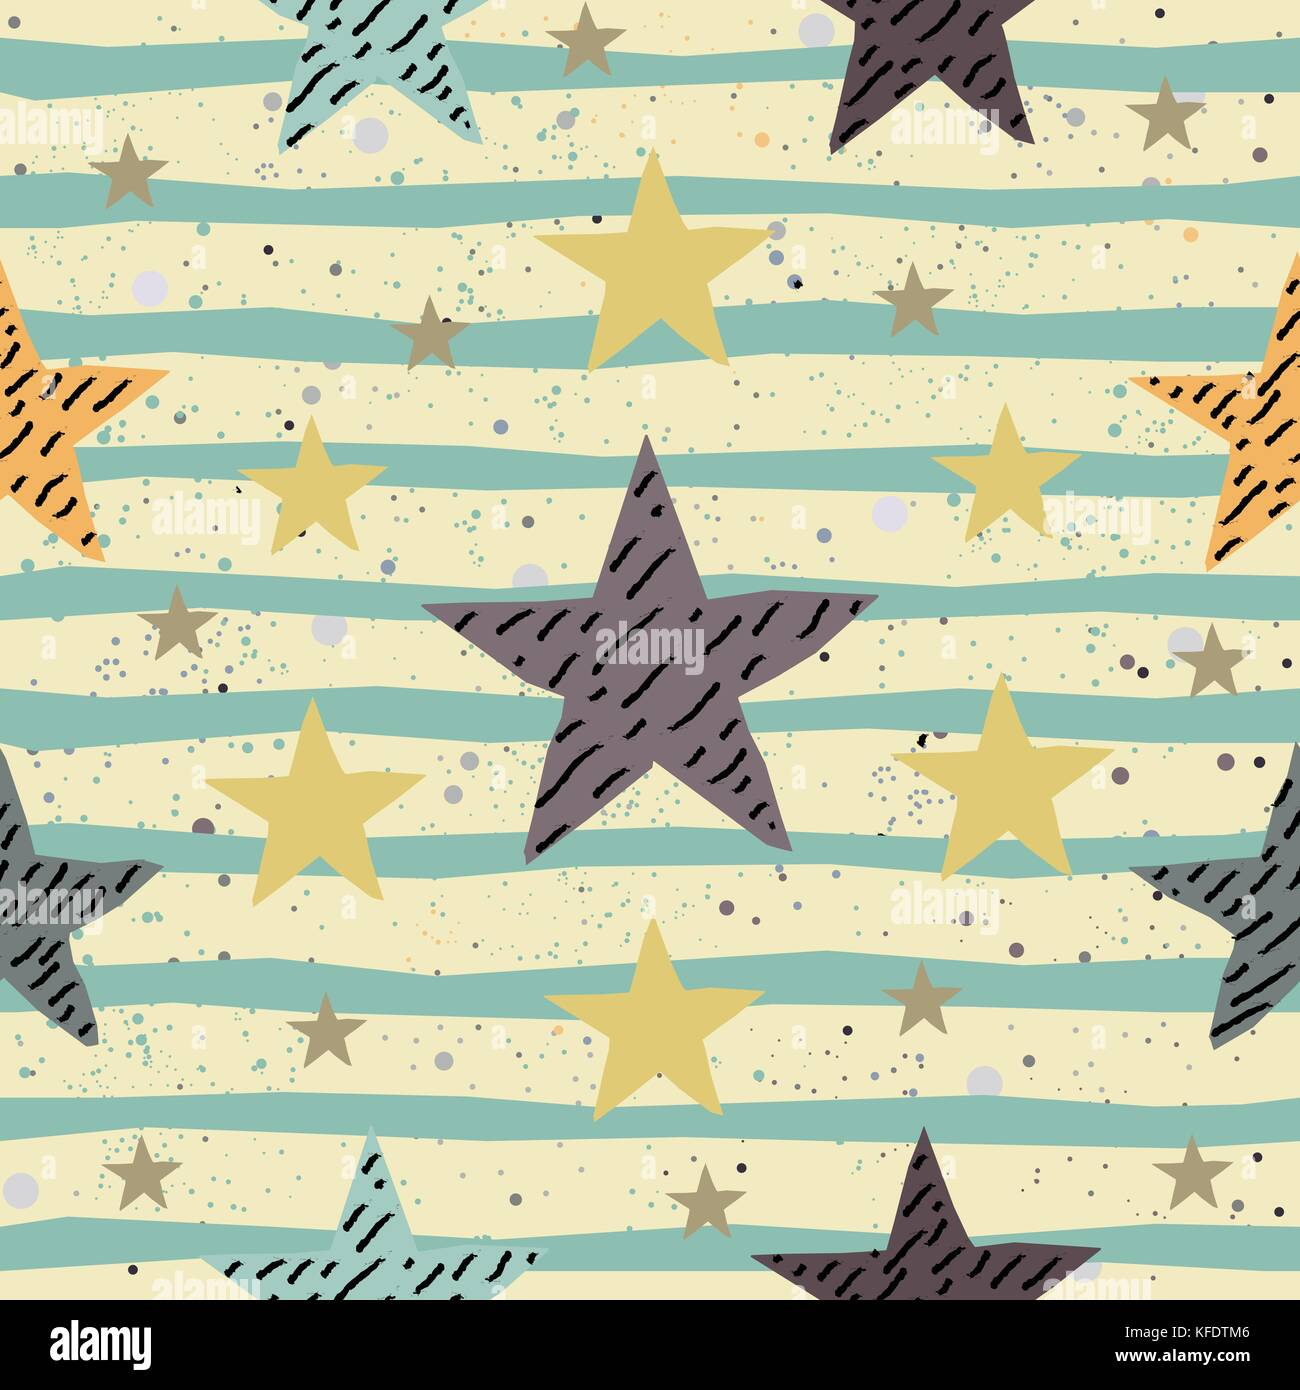 Cute Seamless Star Pattern. Great for backgrounds, backdrops, cars ...